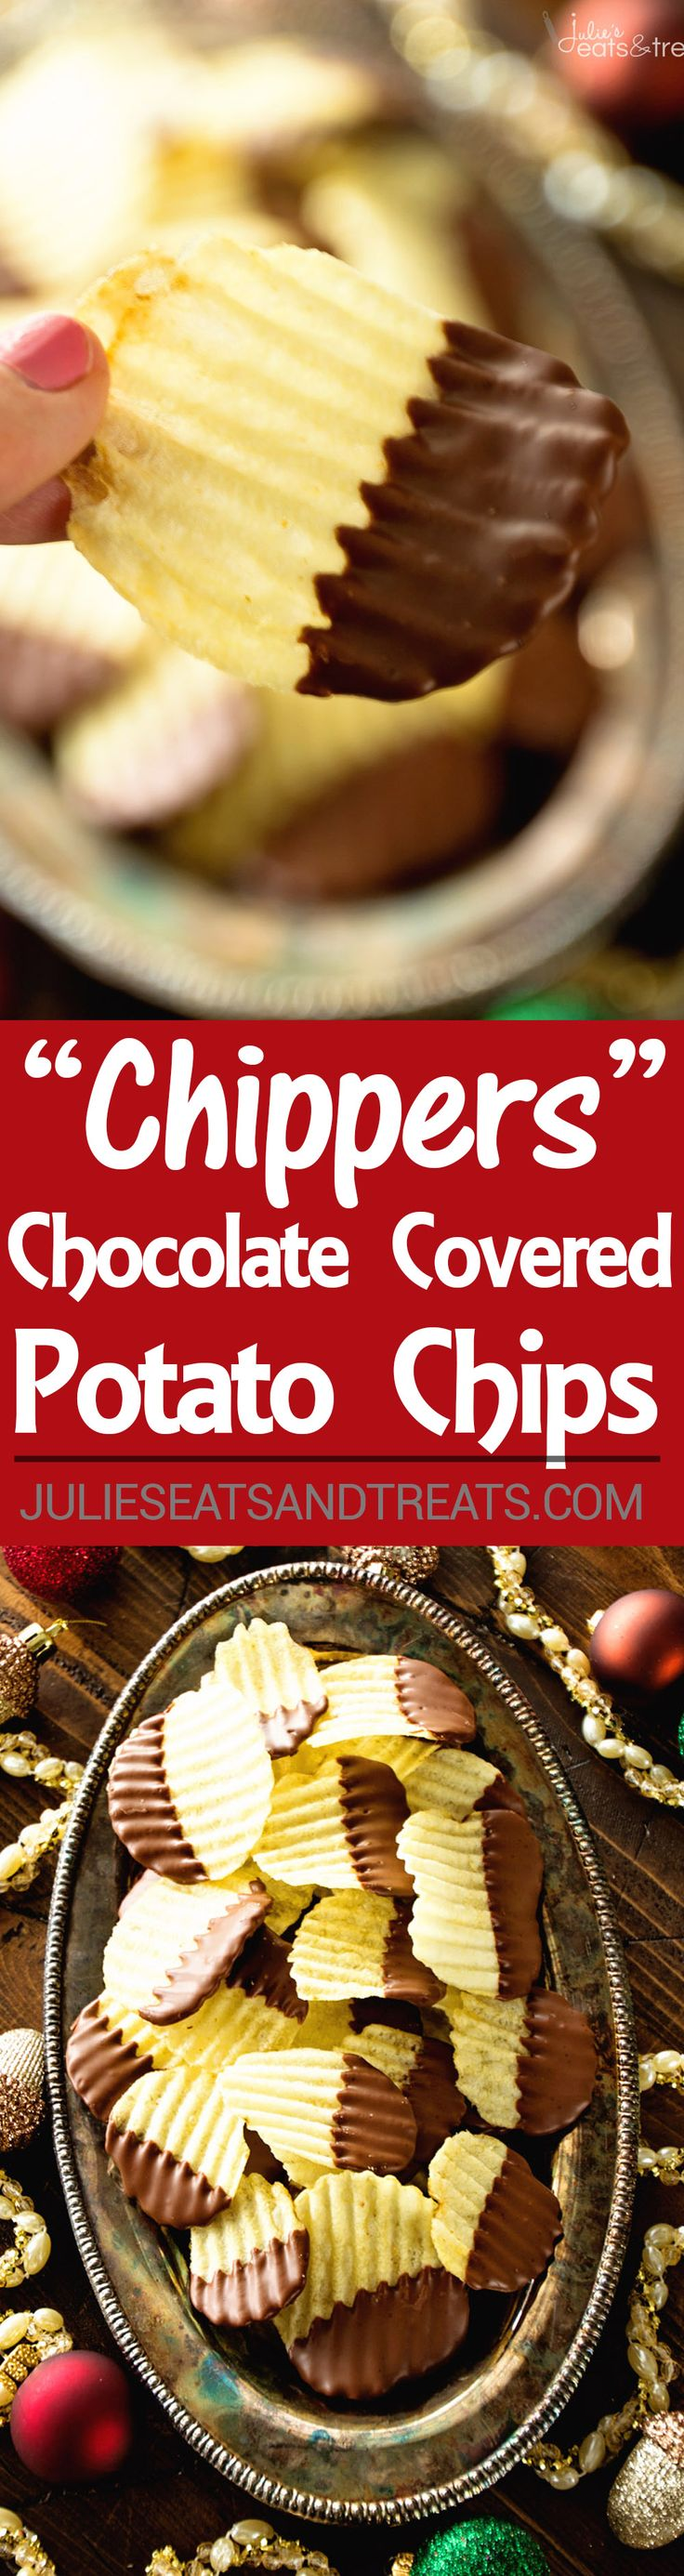 Best 10+ Chocolate covered potato chips ideas on Pinterest ...